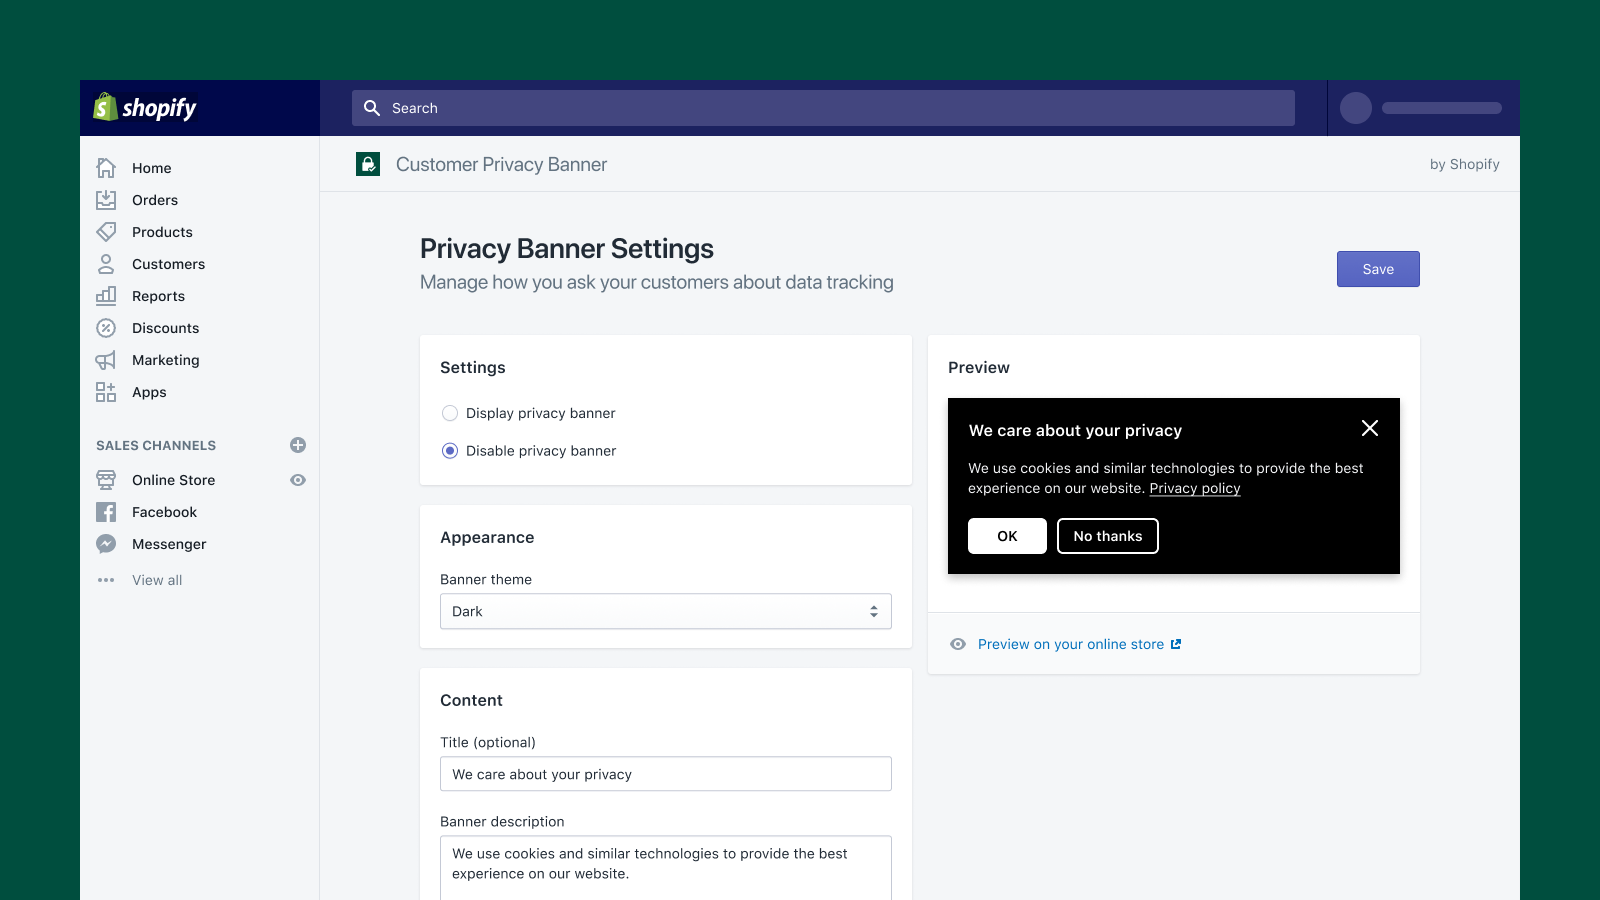 Change your banner to dark mode in the Shopify admin.